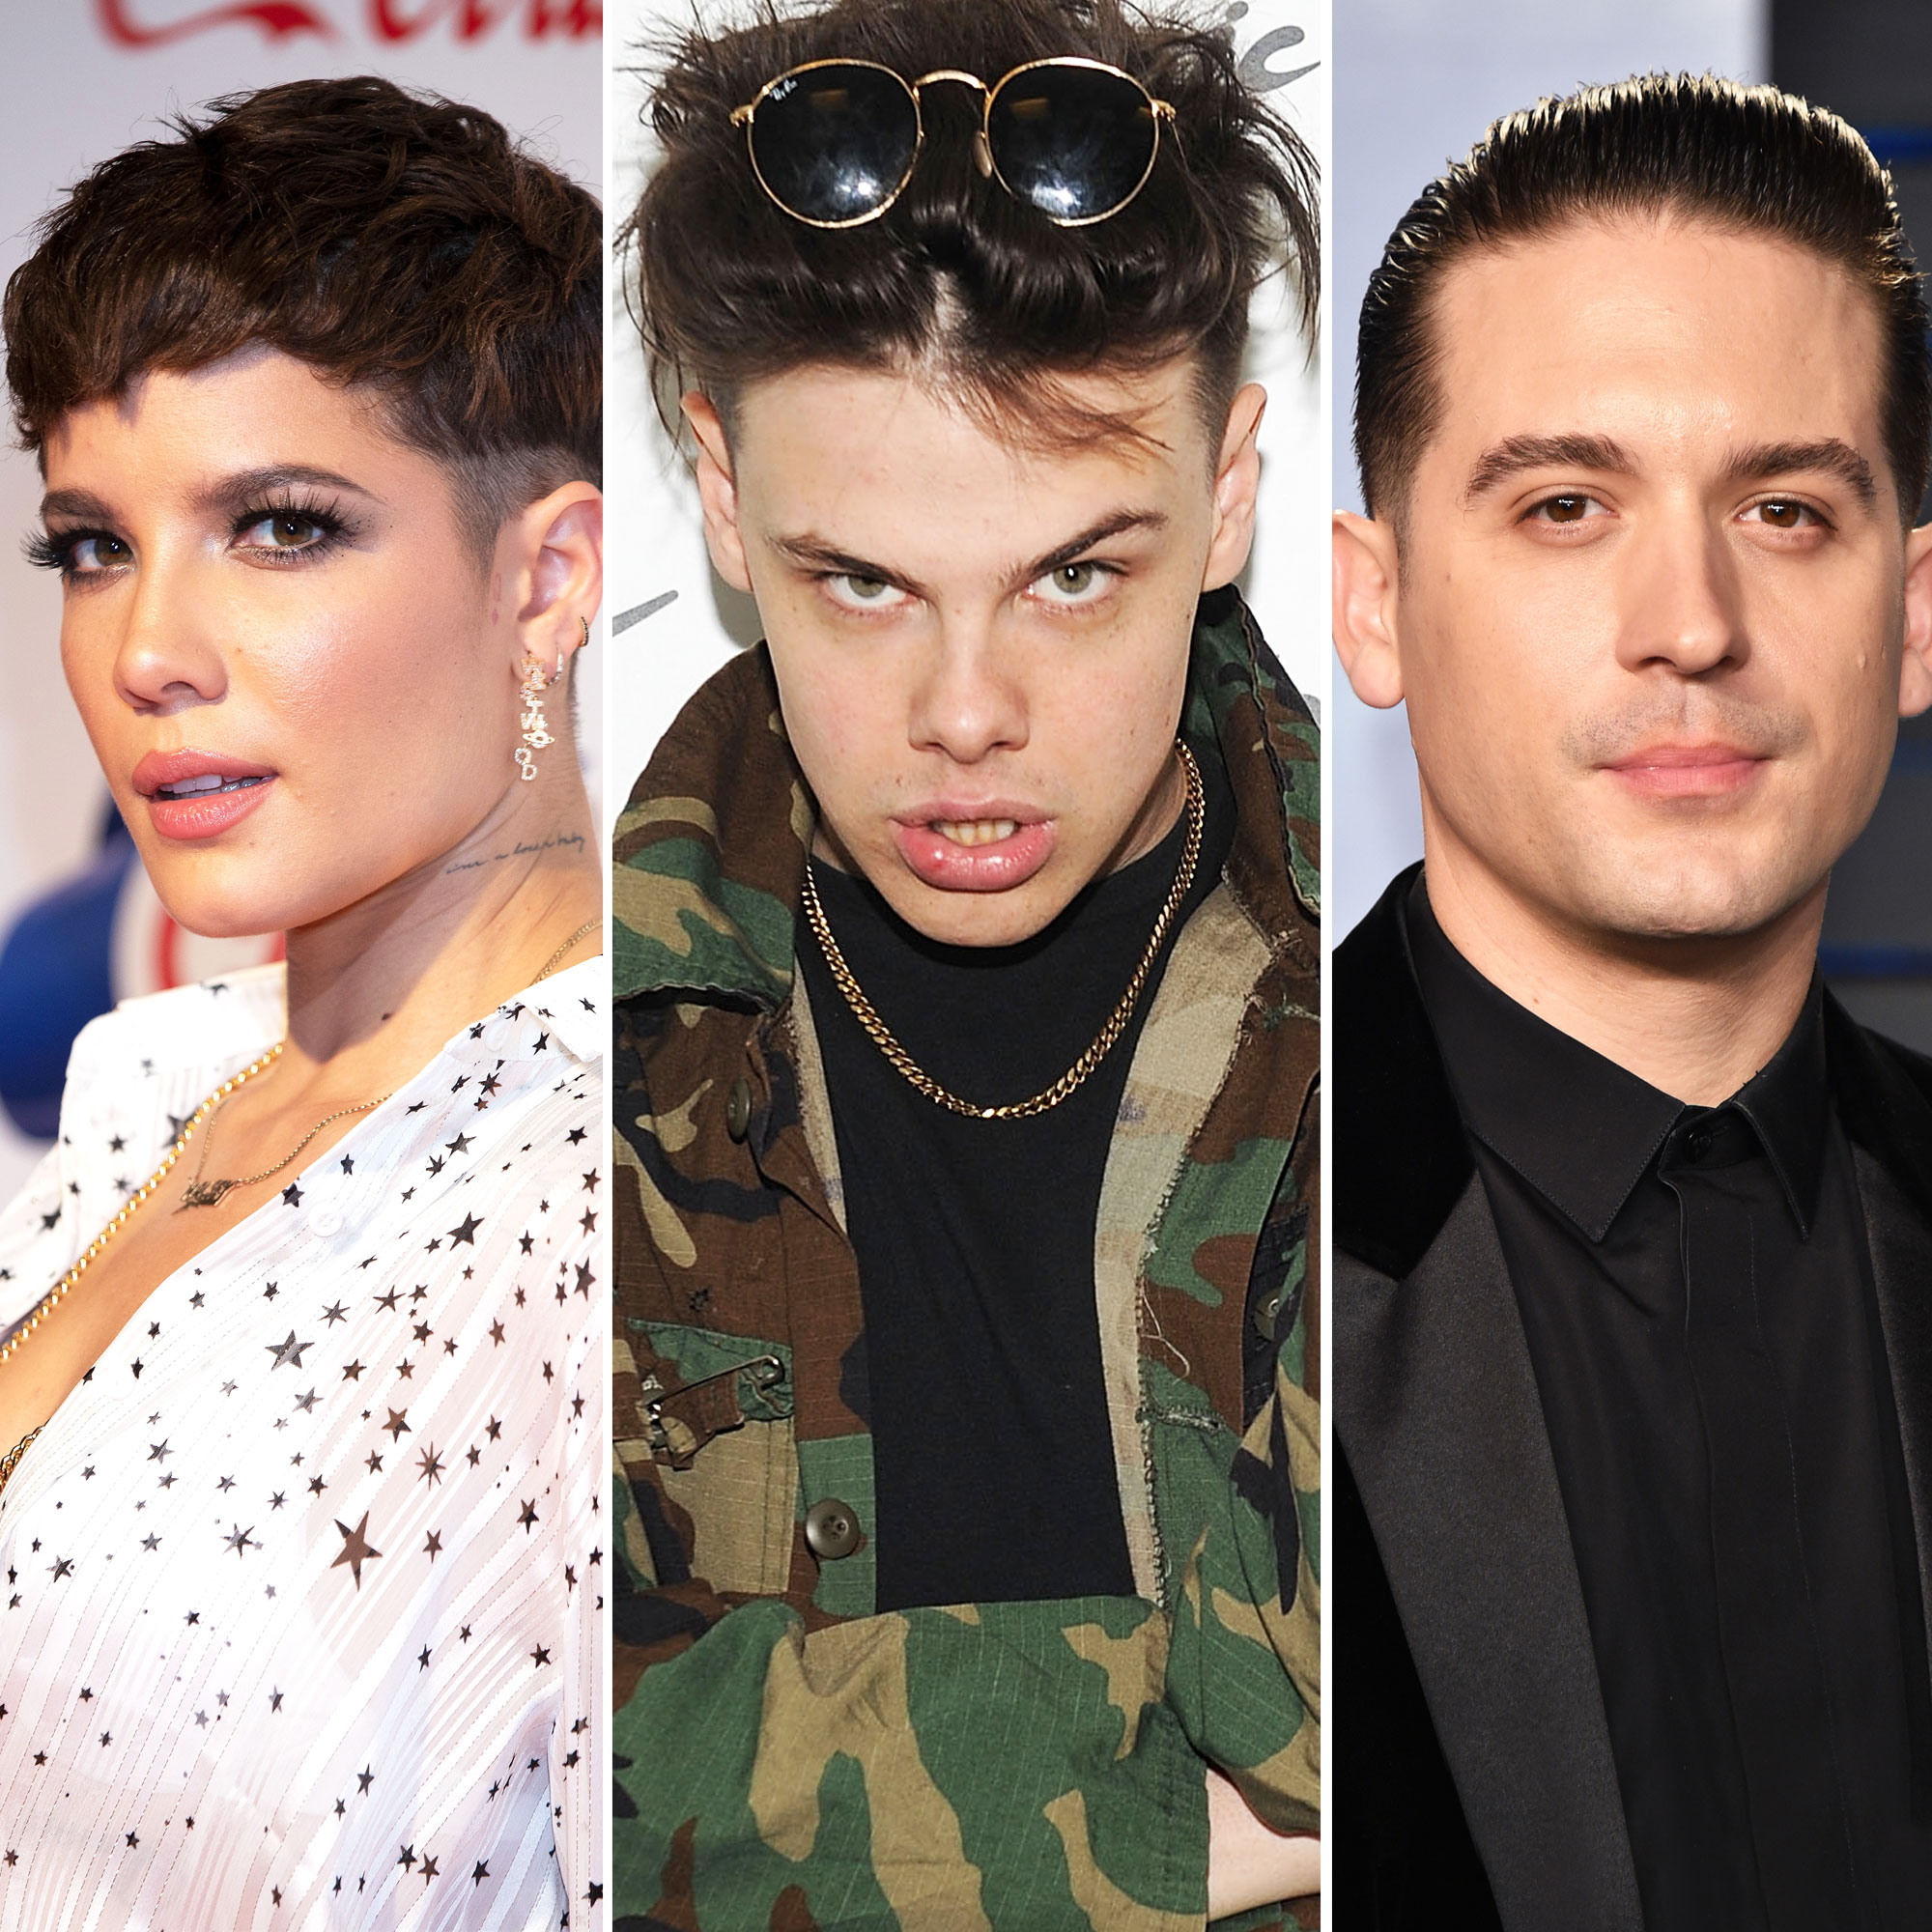 Halsey Goes Instagram Official With Yungblud After G Eazy Split